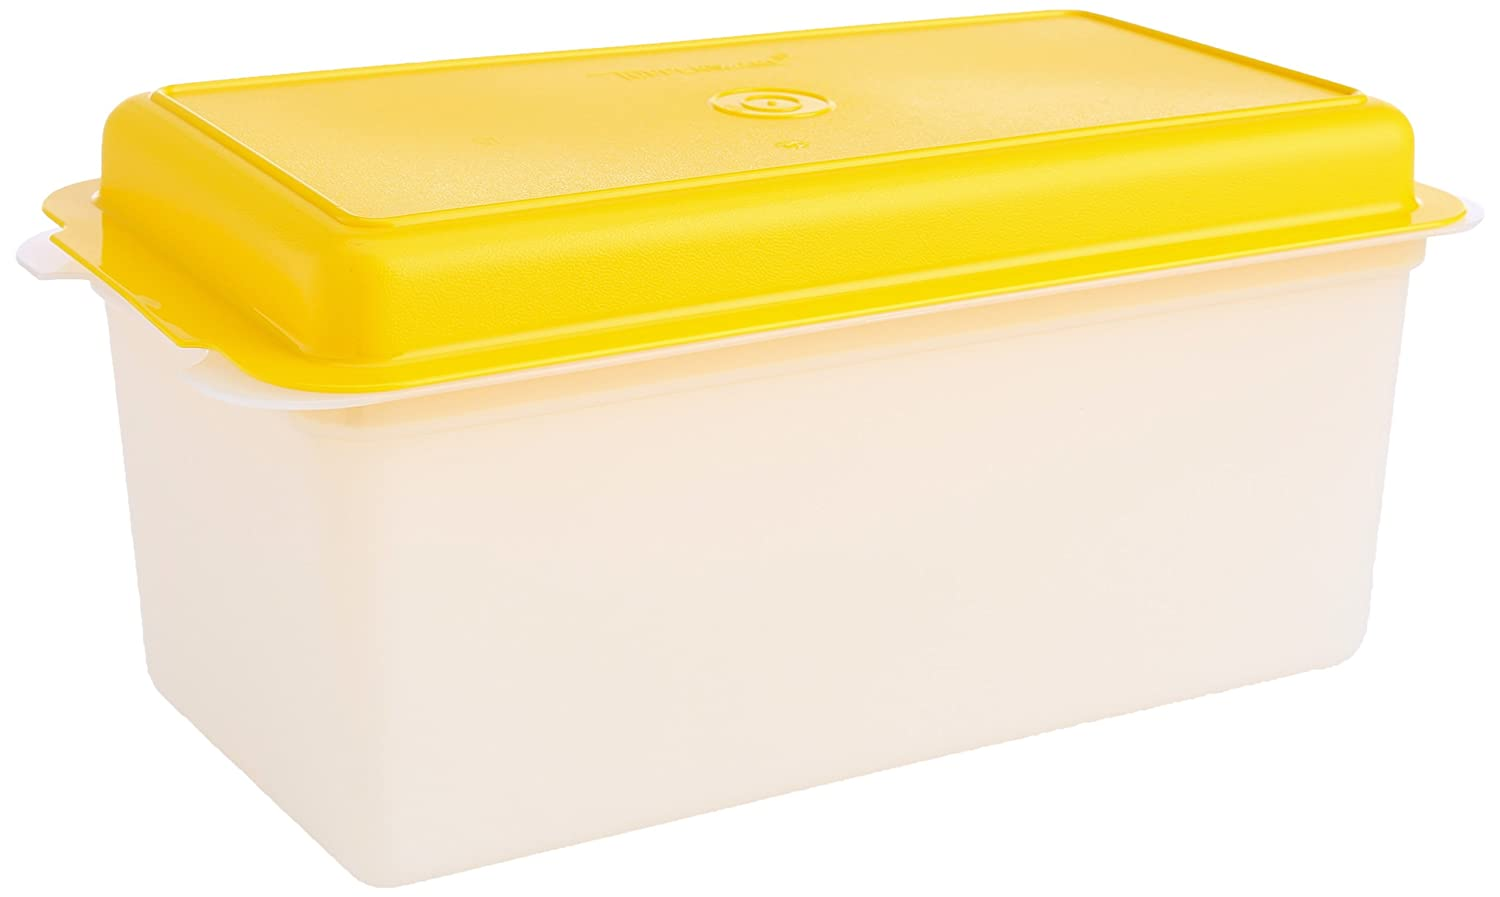 Amazoncom TP 515 T178 Tupperware Bread Server for Keeping Bread